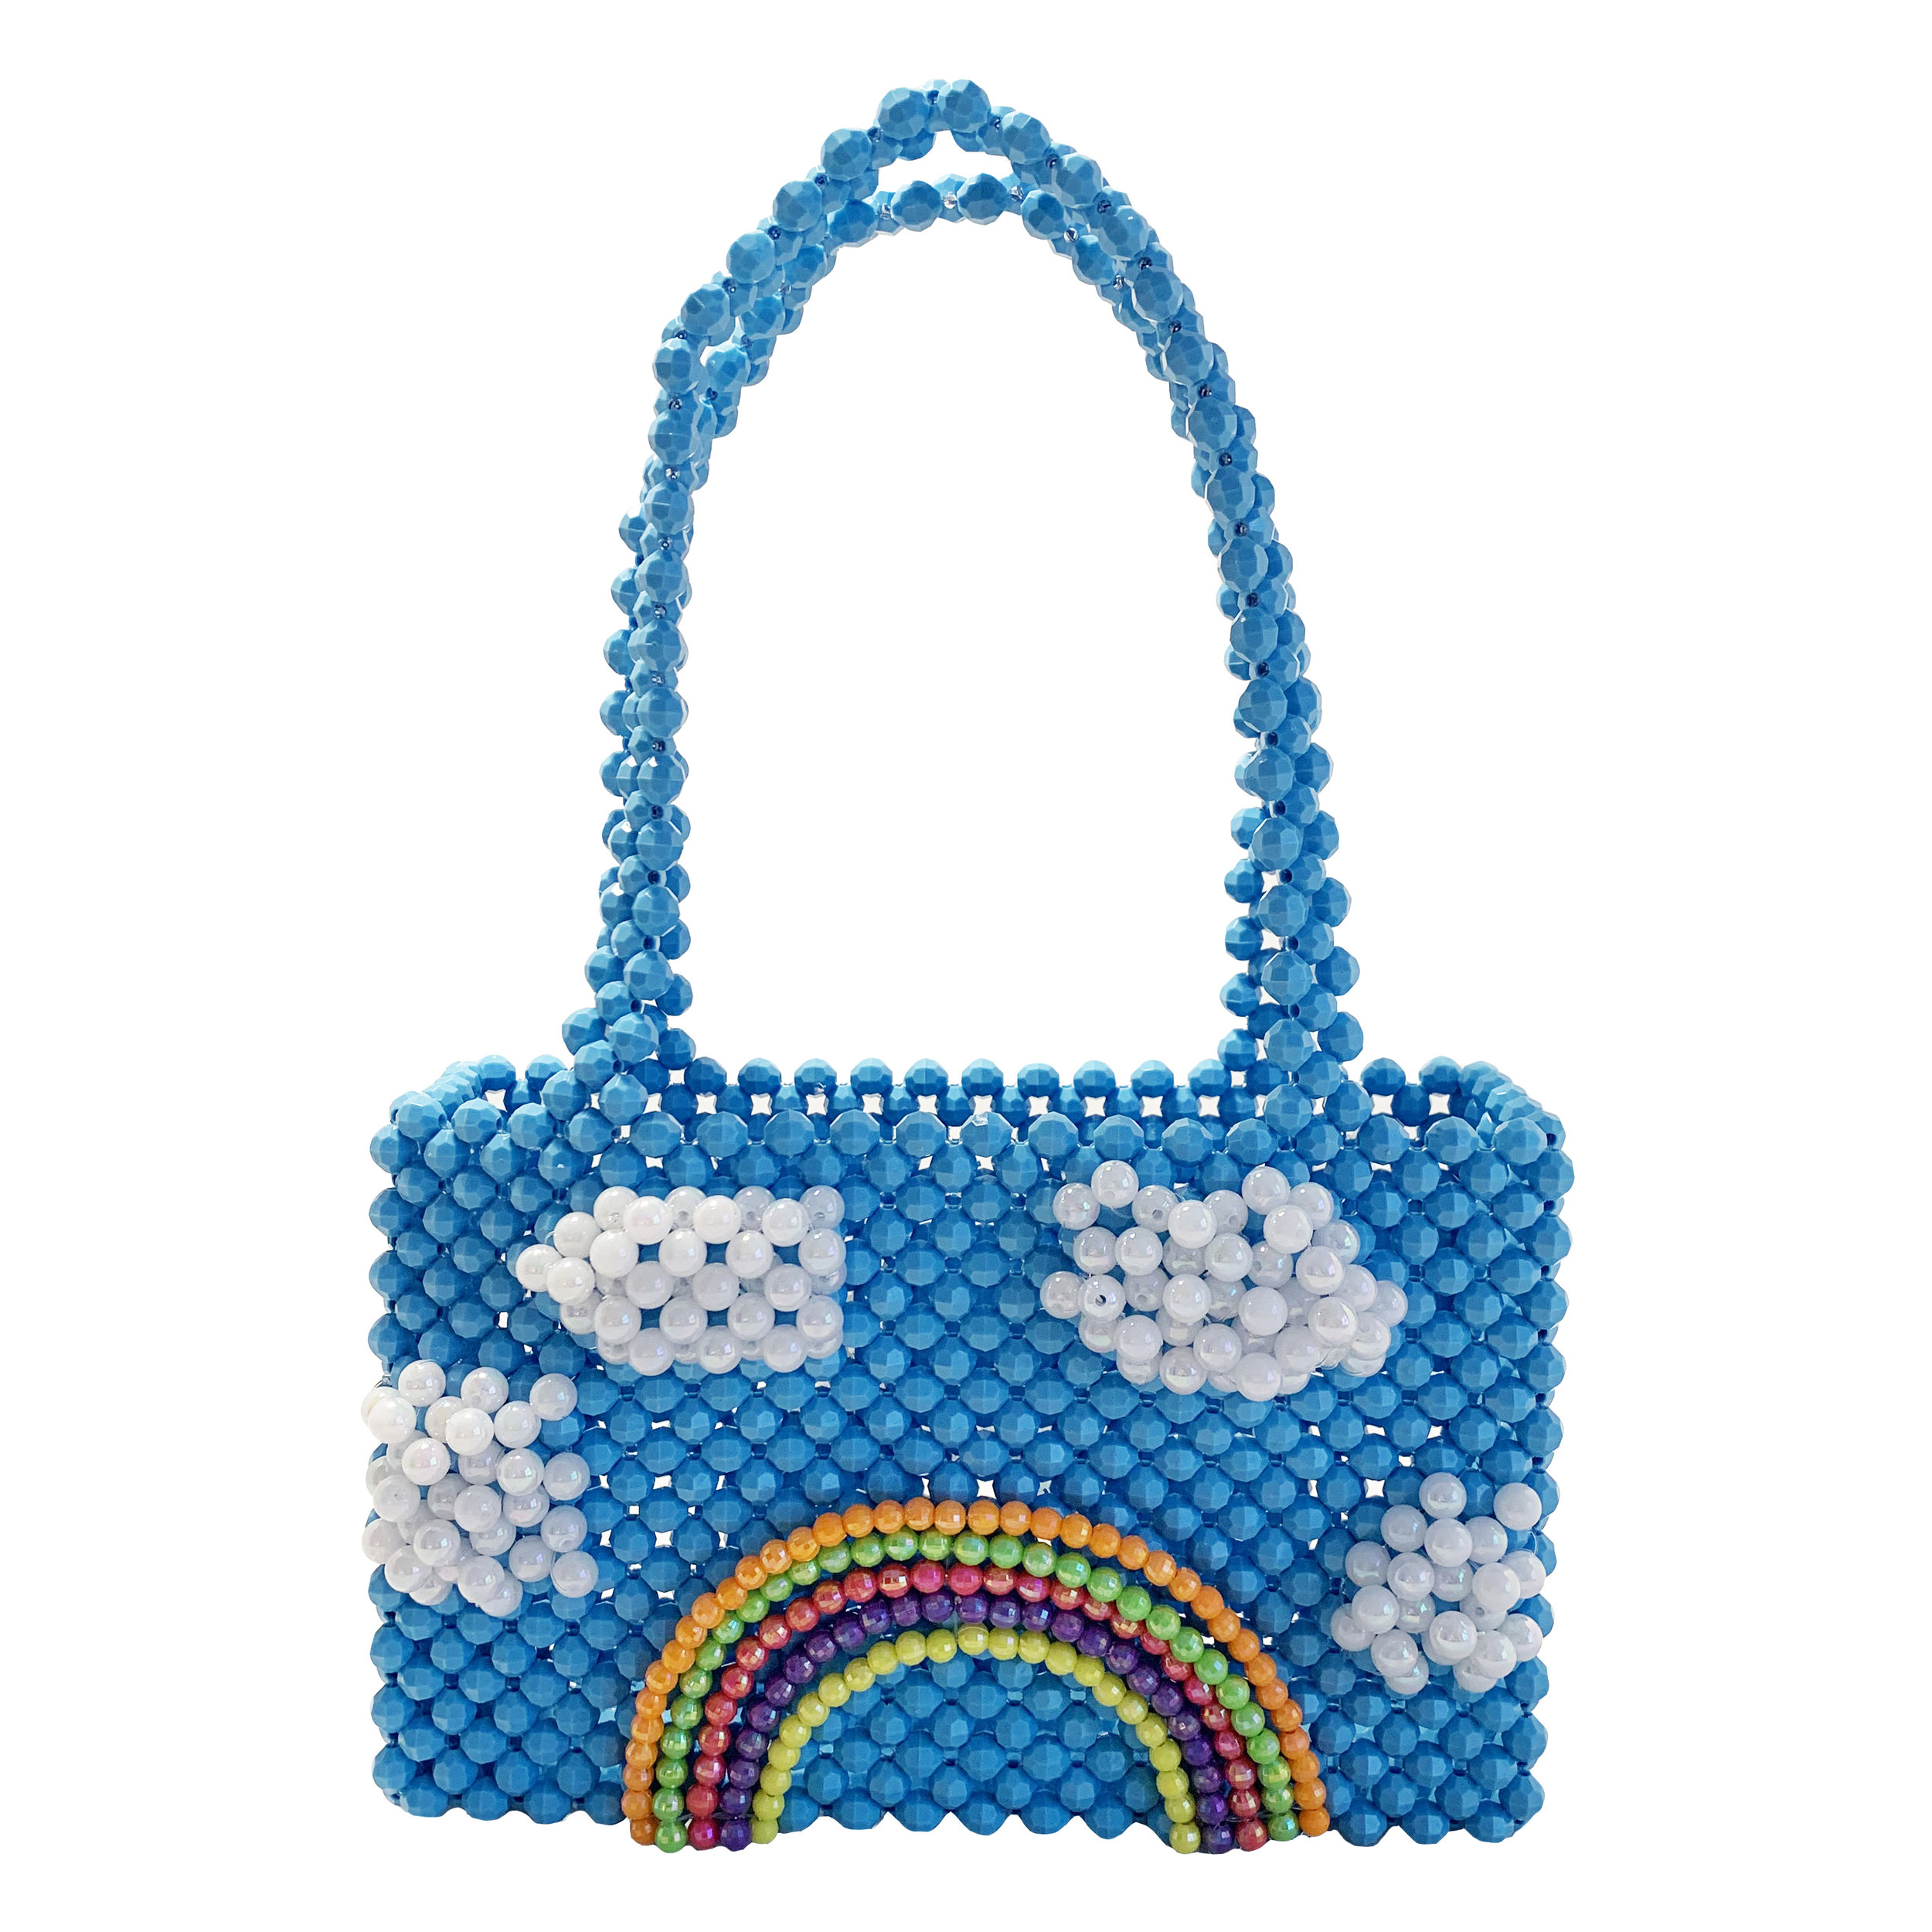 Blue Skies Bag - $325It's that glorious rainbow again, hey girl!Bouncy pearl clouds hath arrived and are joined by their good friend, Rainbow! It's basically the coolest party in town.released in very limited quantity, sign up below to be notified FIRST!